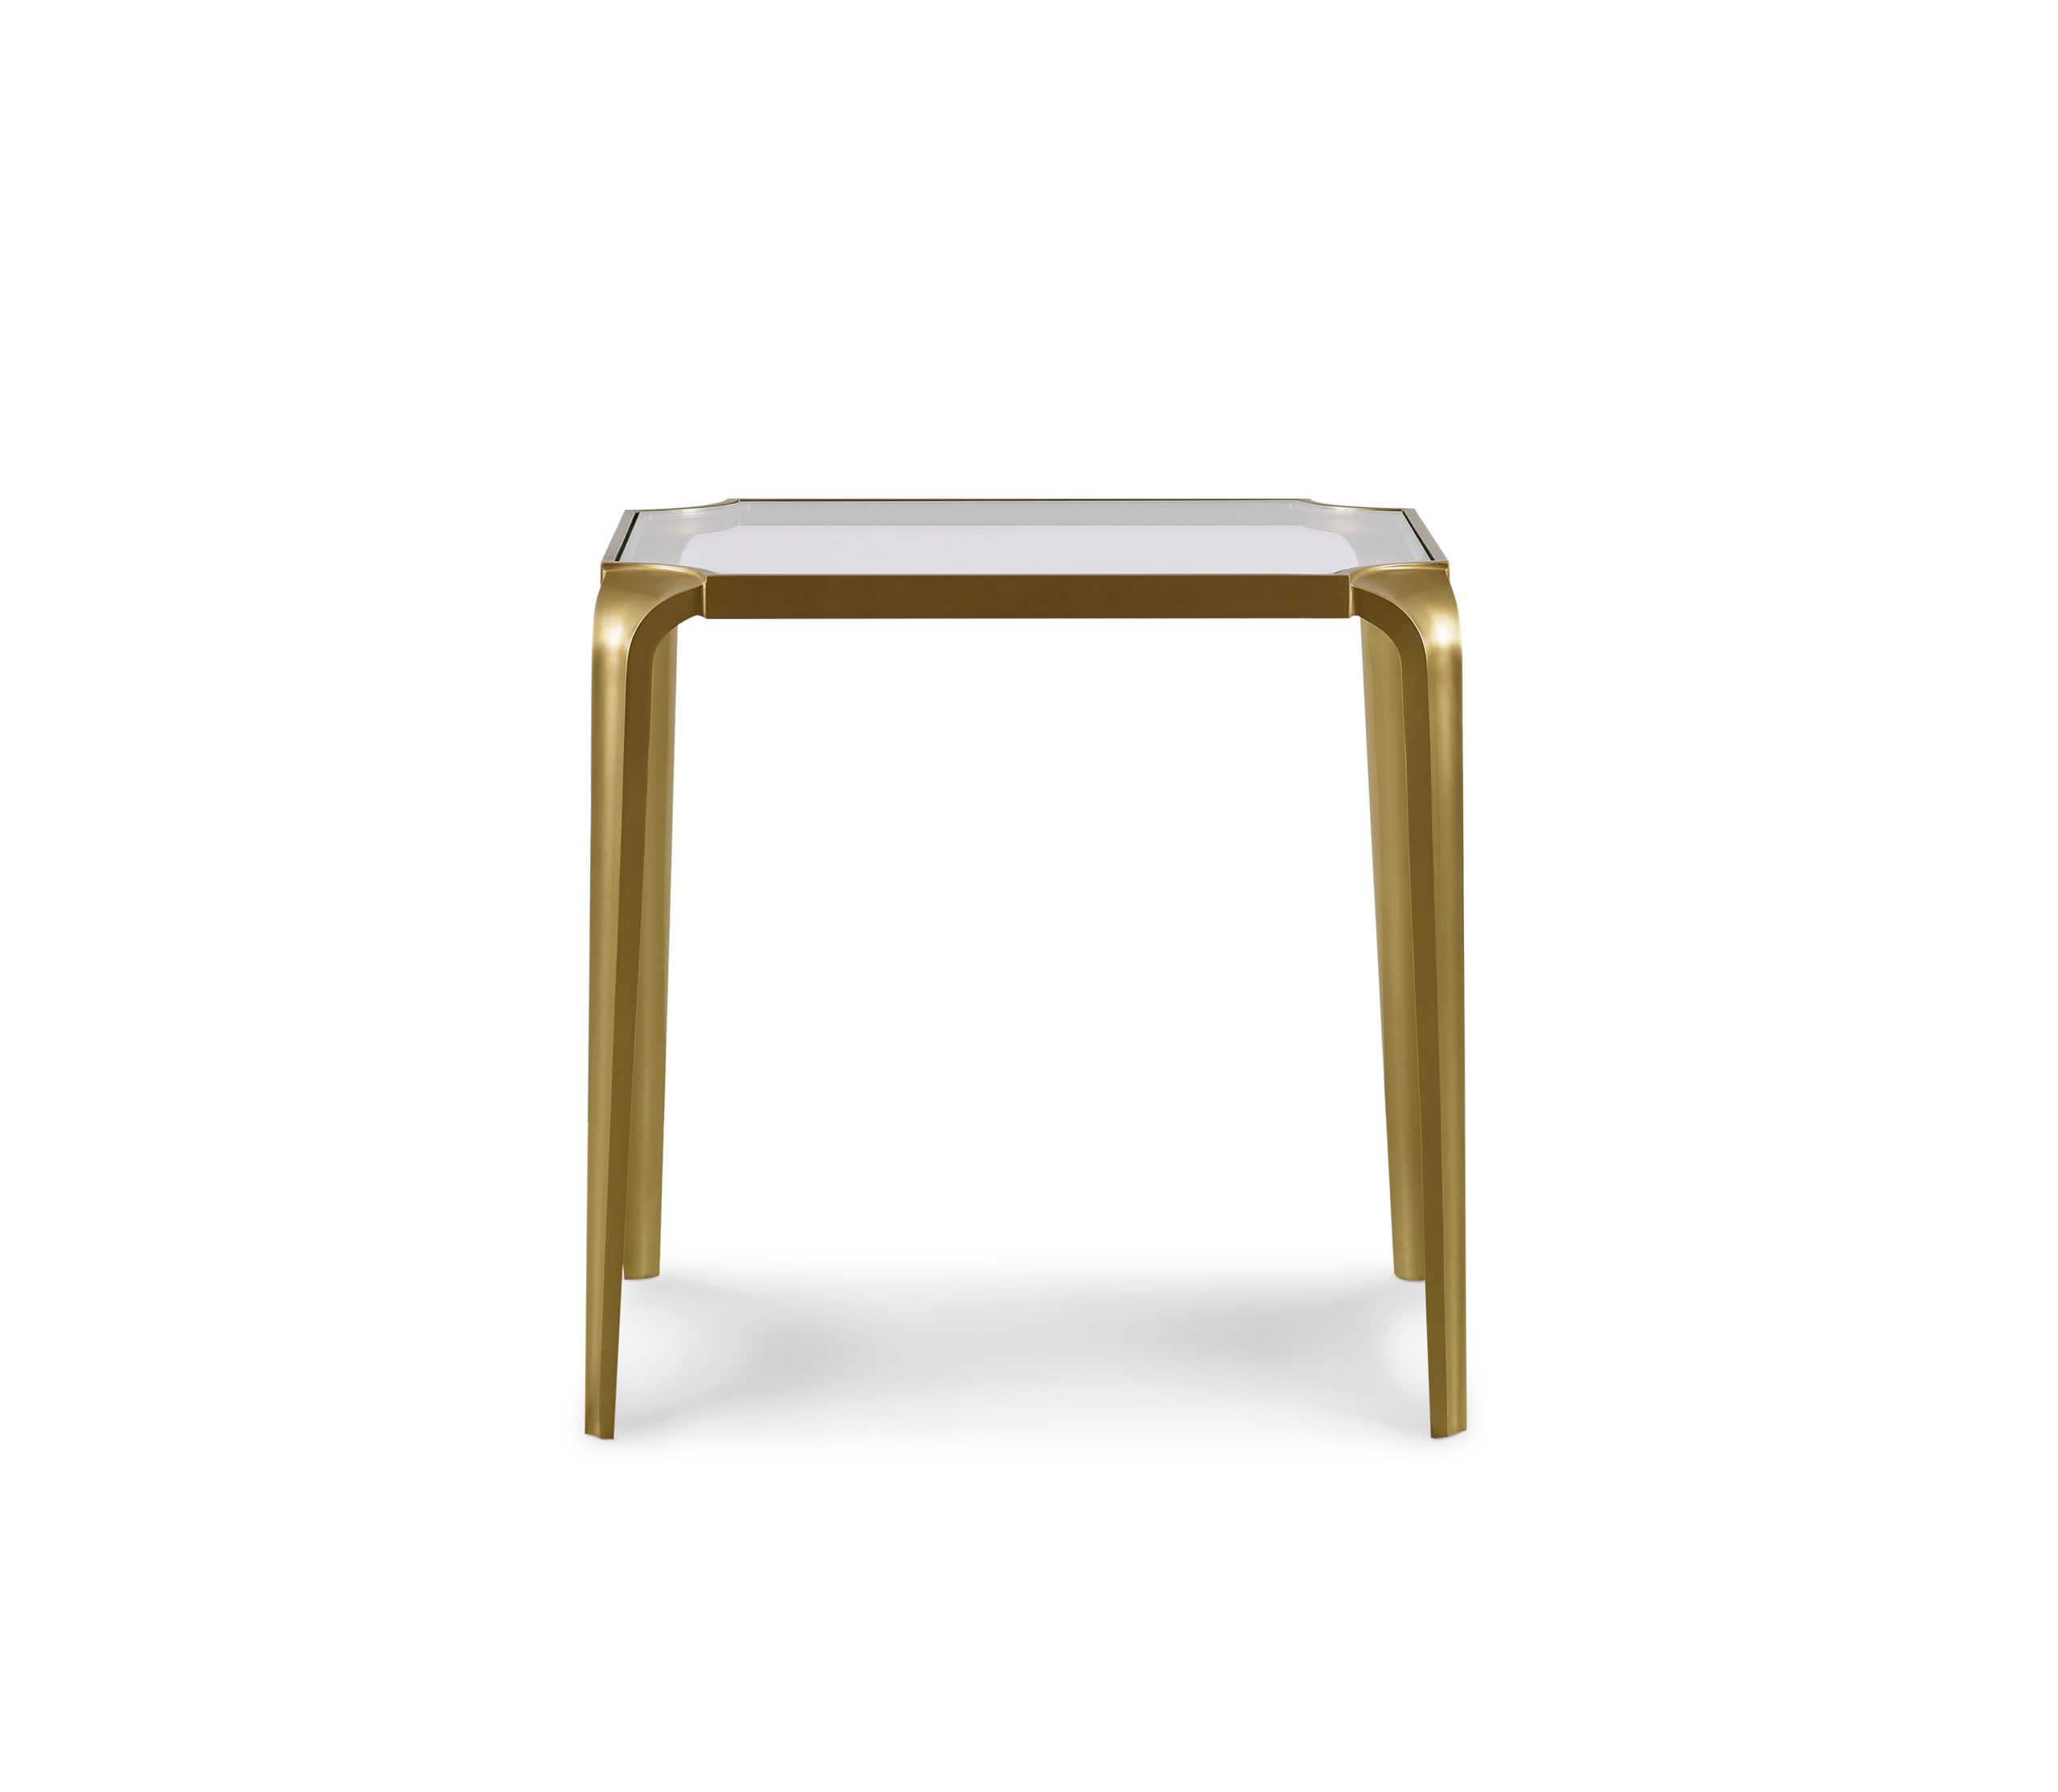 Baker_products_WNWN_lotus_side_table_front_BAA3053-scaled-3